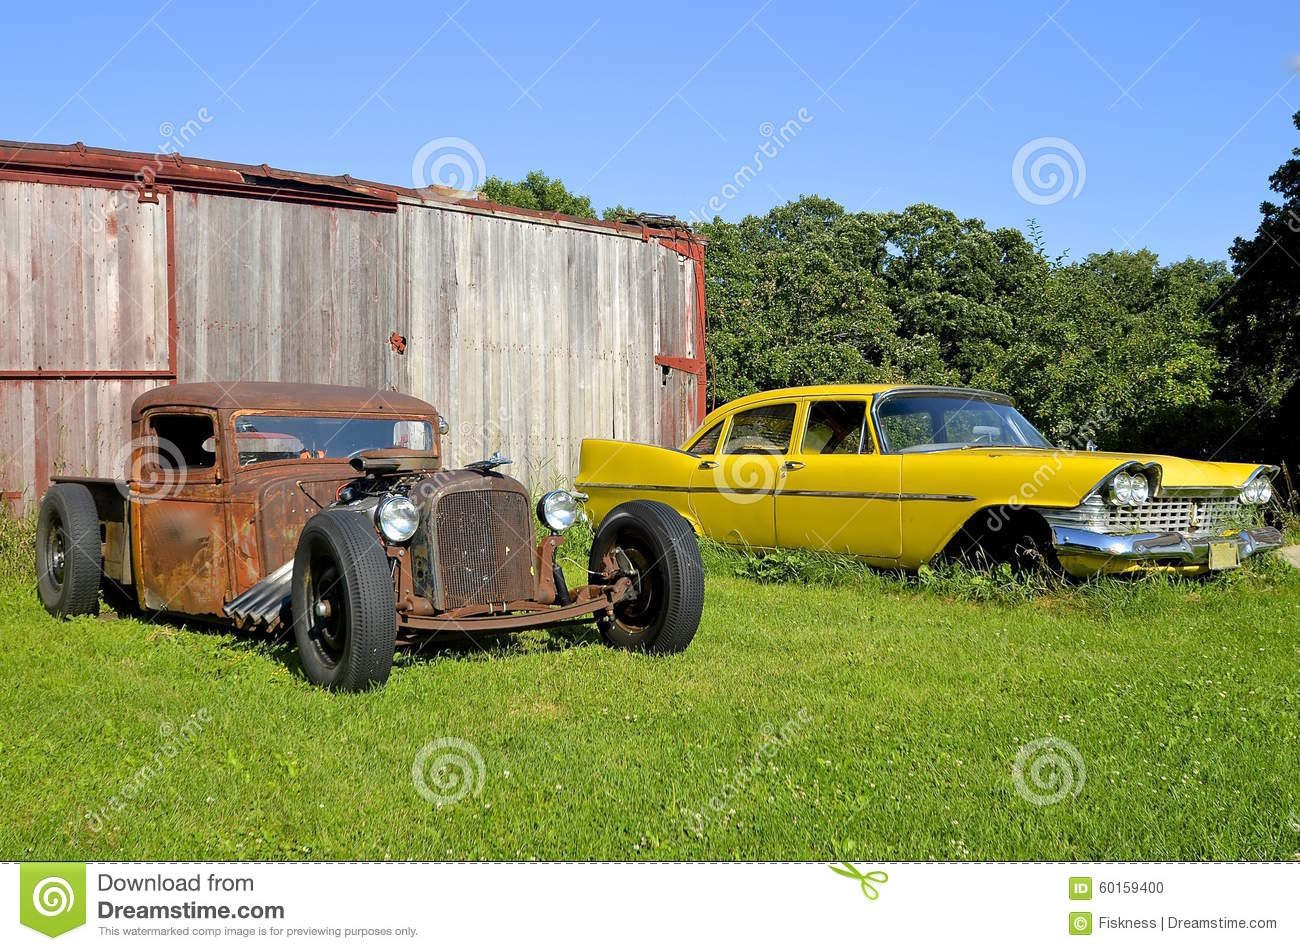 Vintage cars alongside a railroad box car